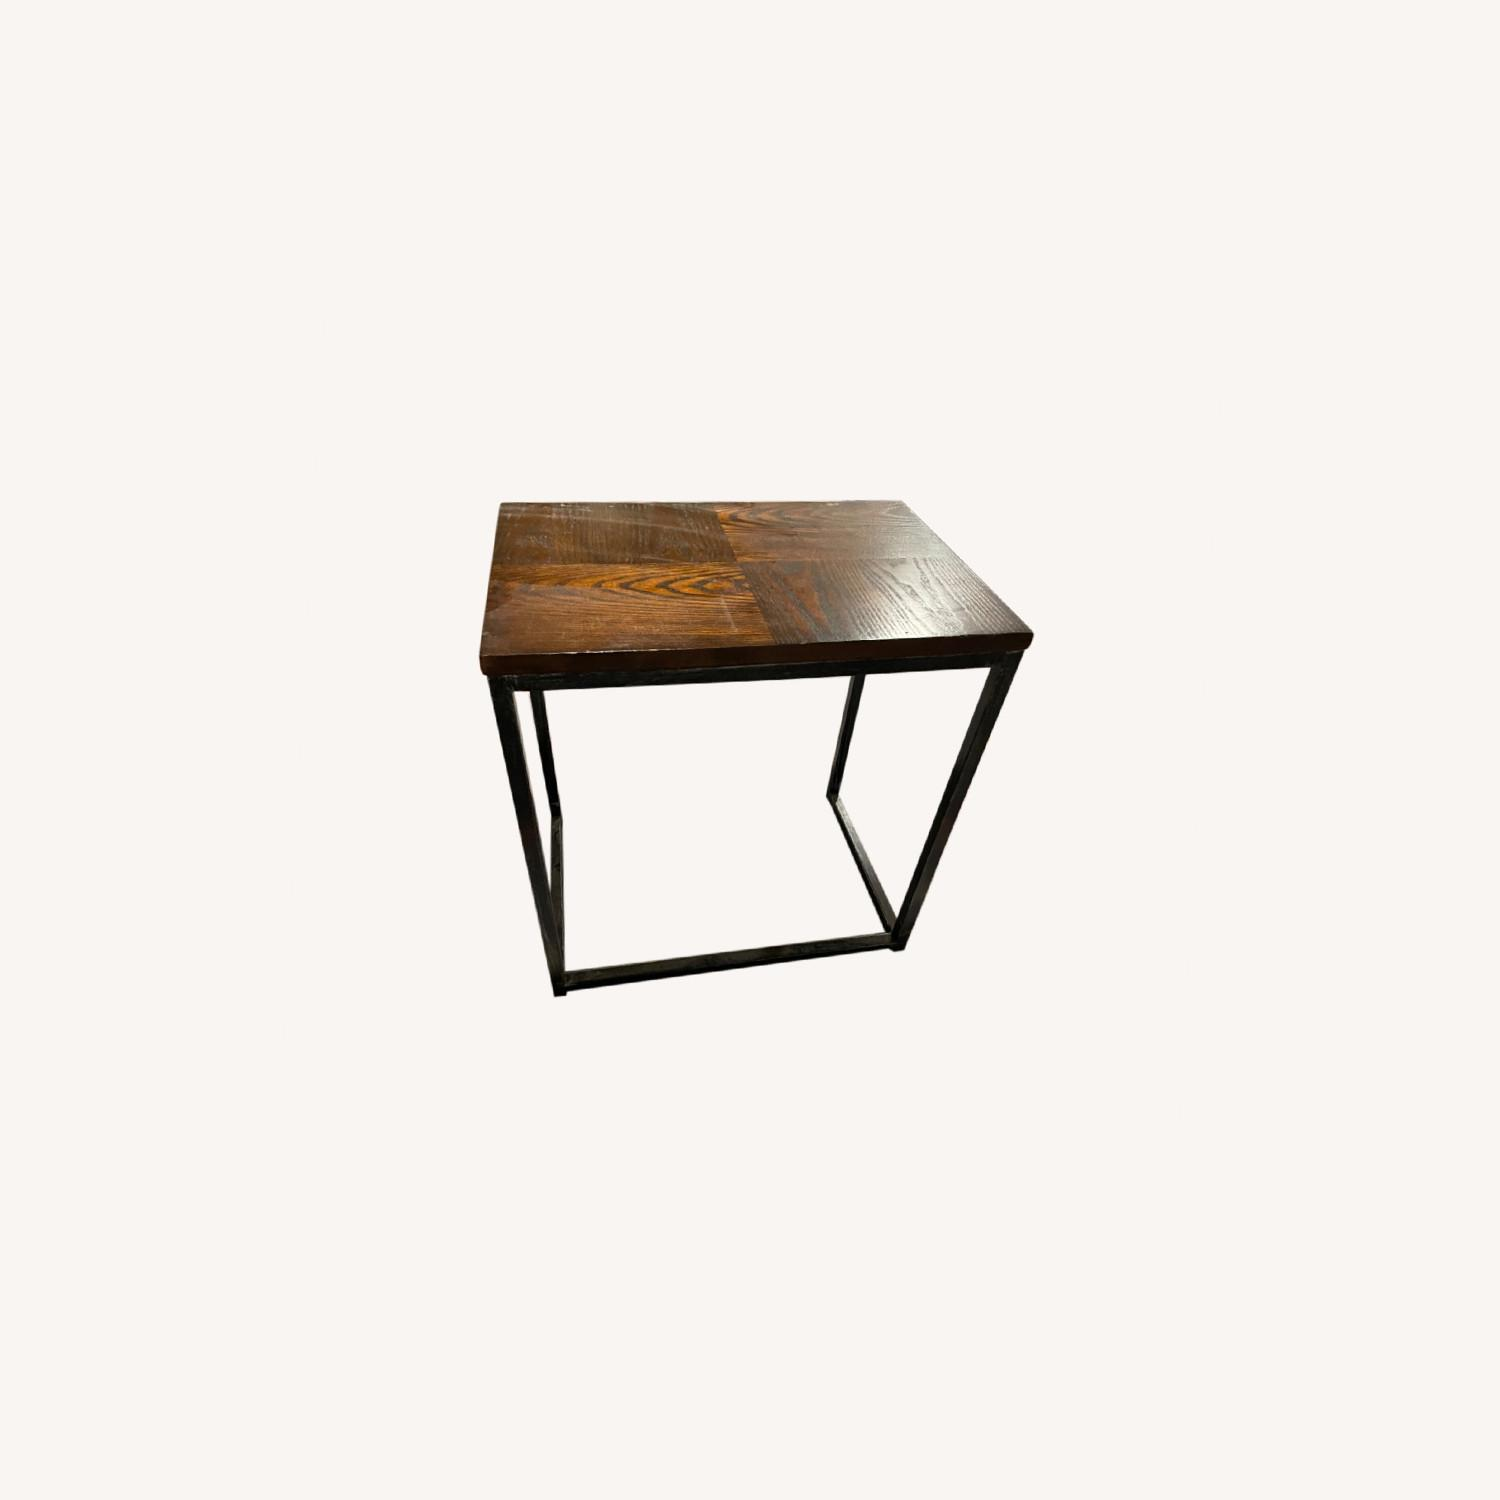 Wood Top Table with Metal Frame - image-0